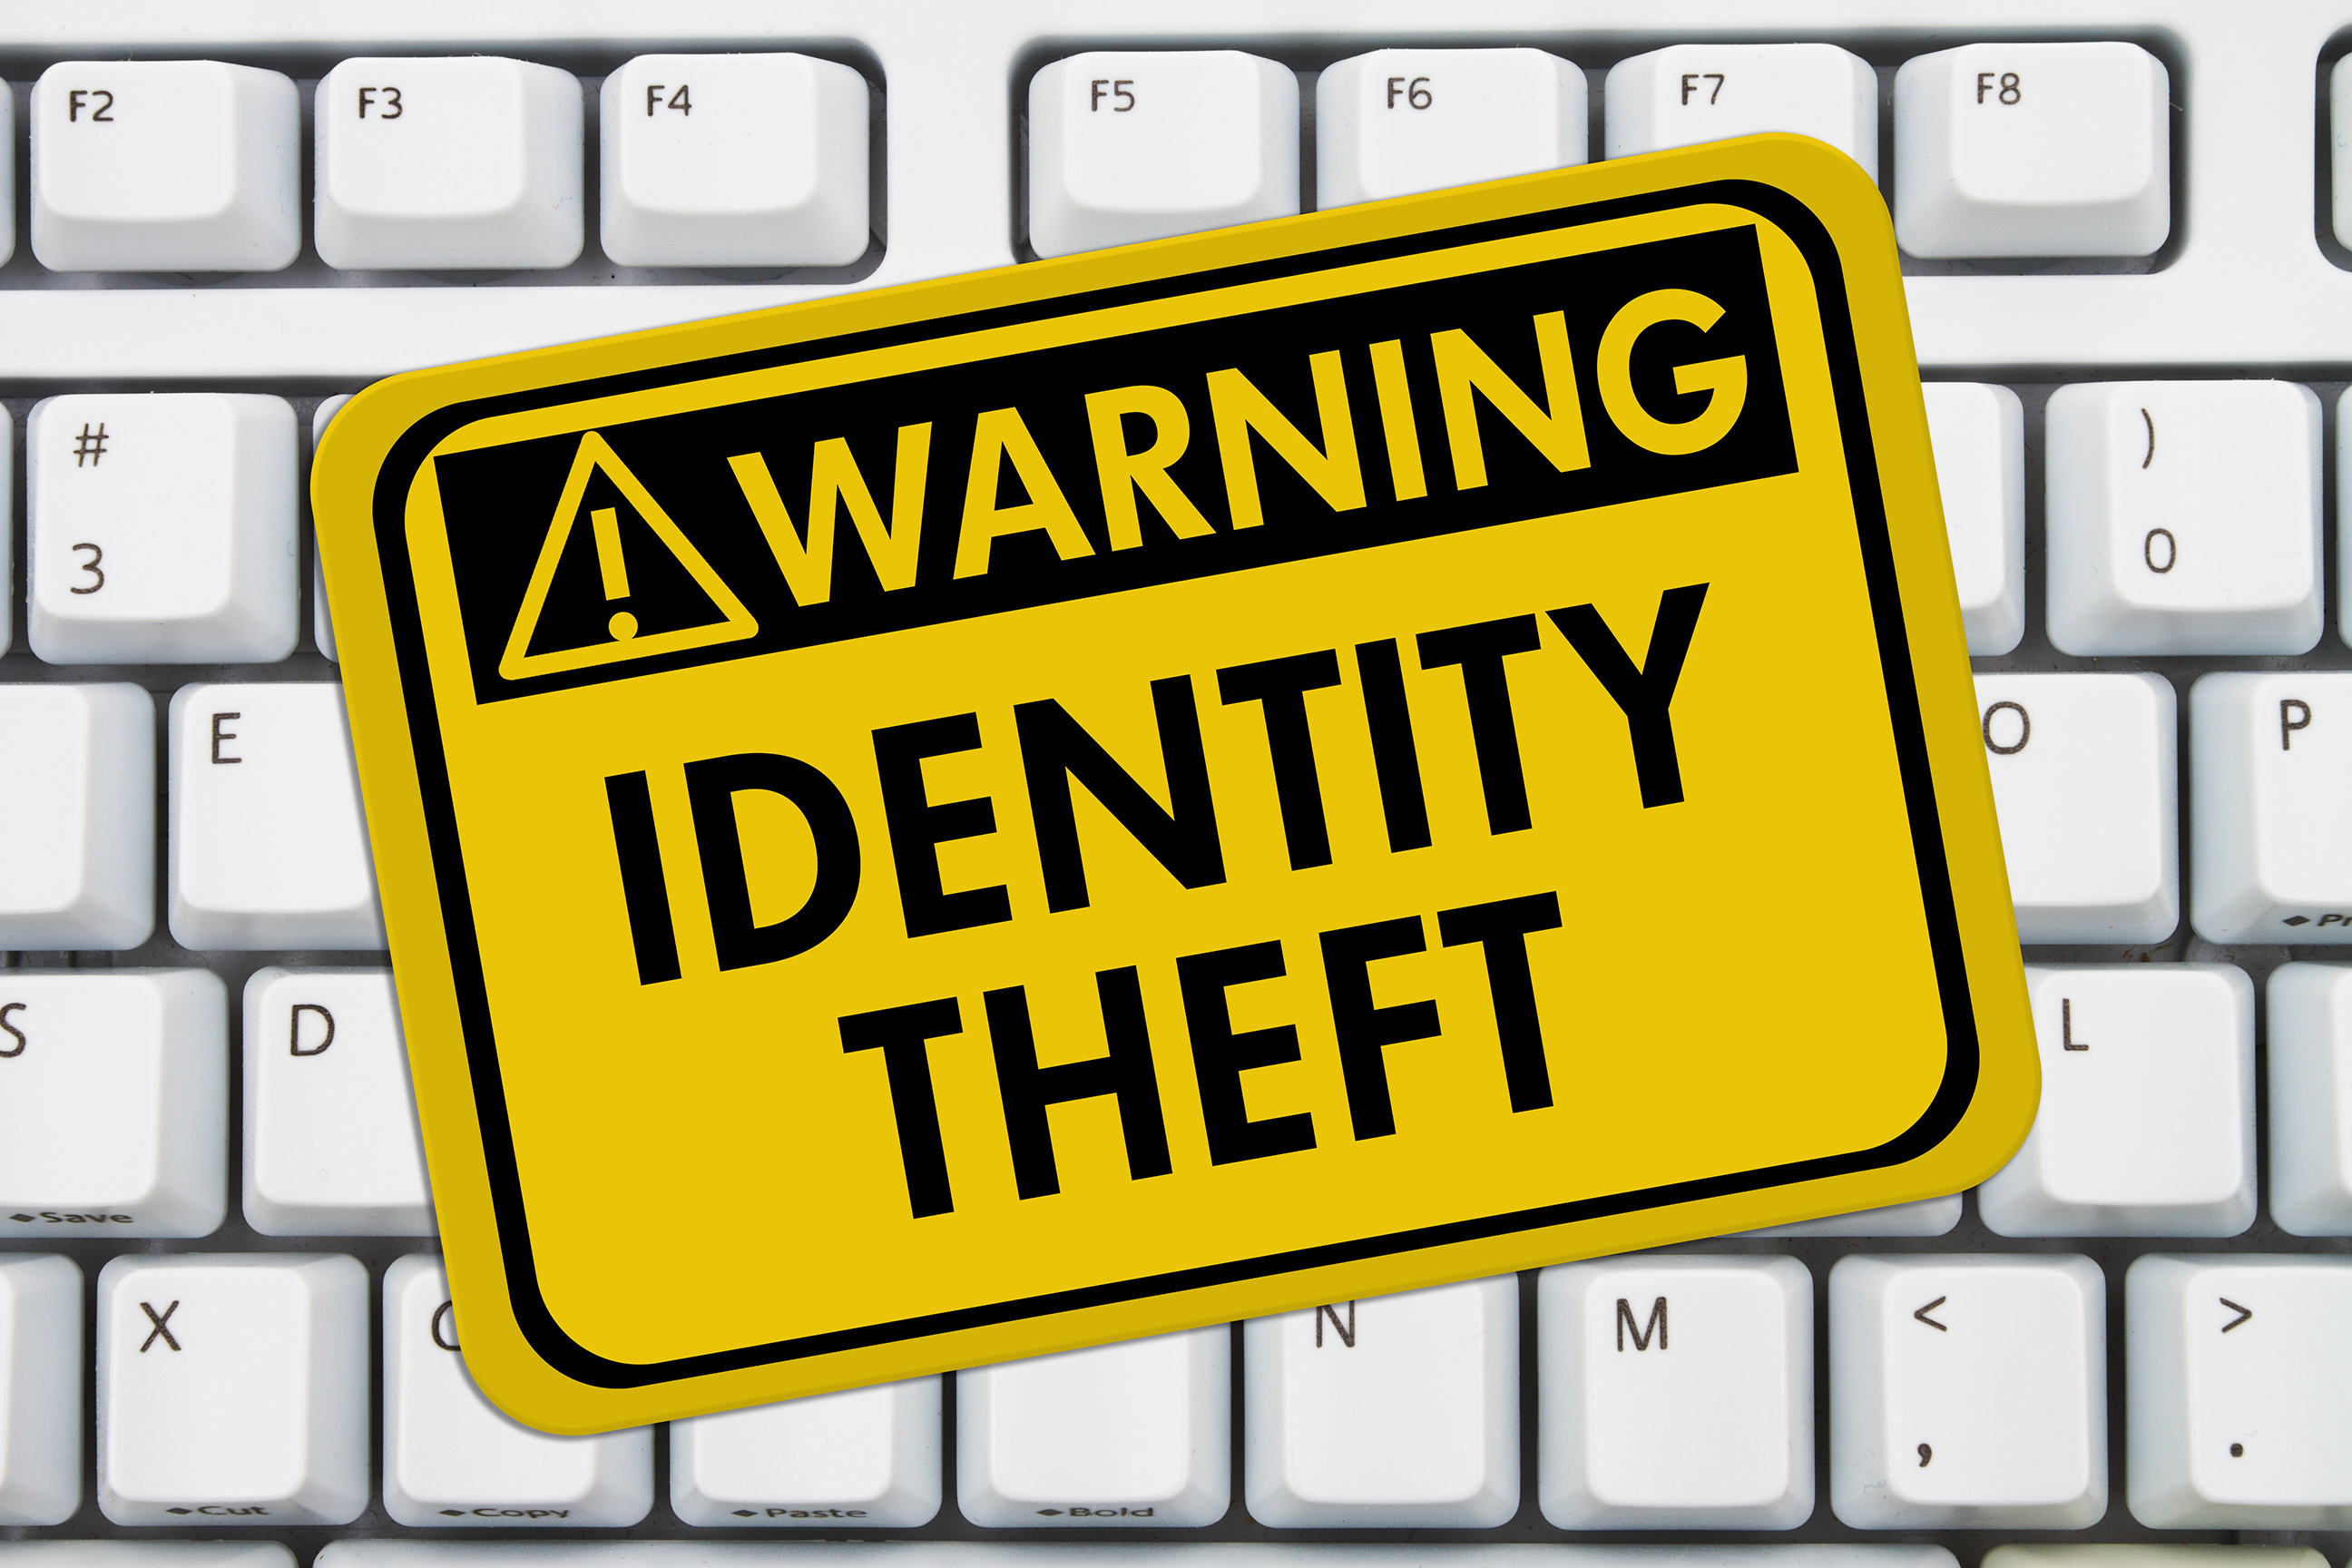 Identity Theft  The Safegard Group, Incthe Safegard. Life Insurance Co Of Alabama. Music Engineering Career Create A Credit Card. Garage Door Opener Houston Degrees In Boston. Cloud Data Storage Providers Irs Form 2751. Child Closet Organization Ideas. It Consulting Firms In Atlanta. Dreams Memory Foam Mattress Removal Of Bees. Sage Graduate School Occupational Therapy